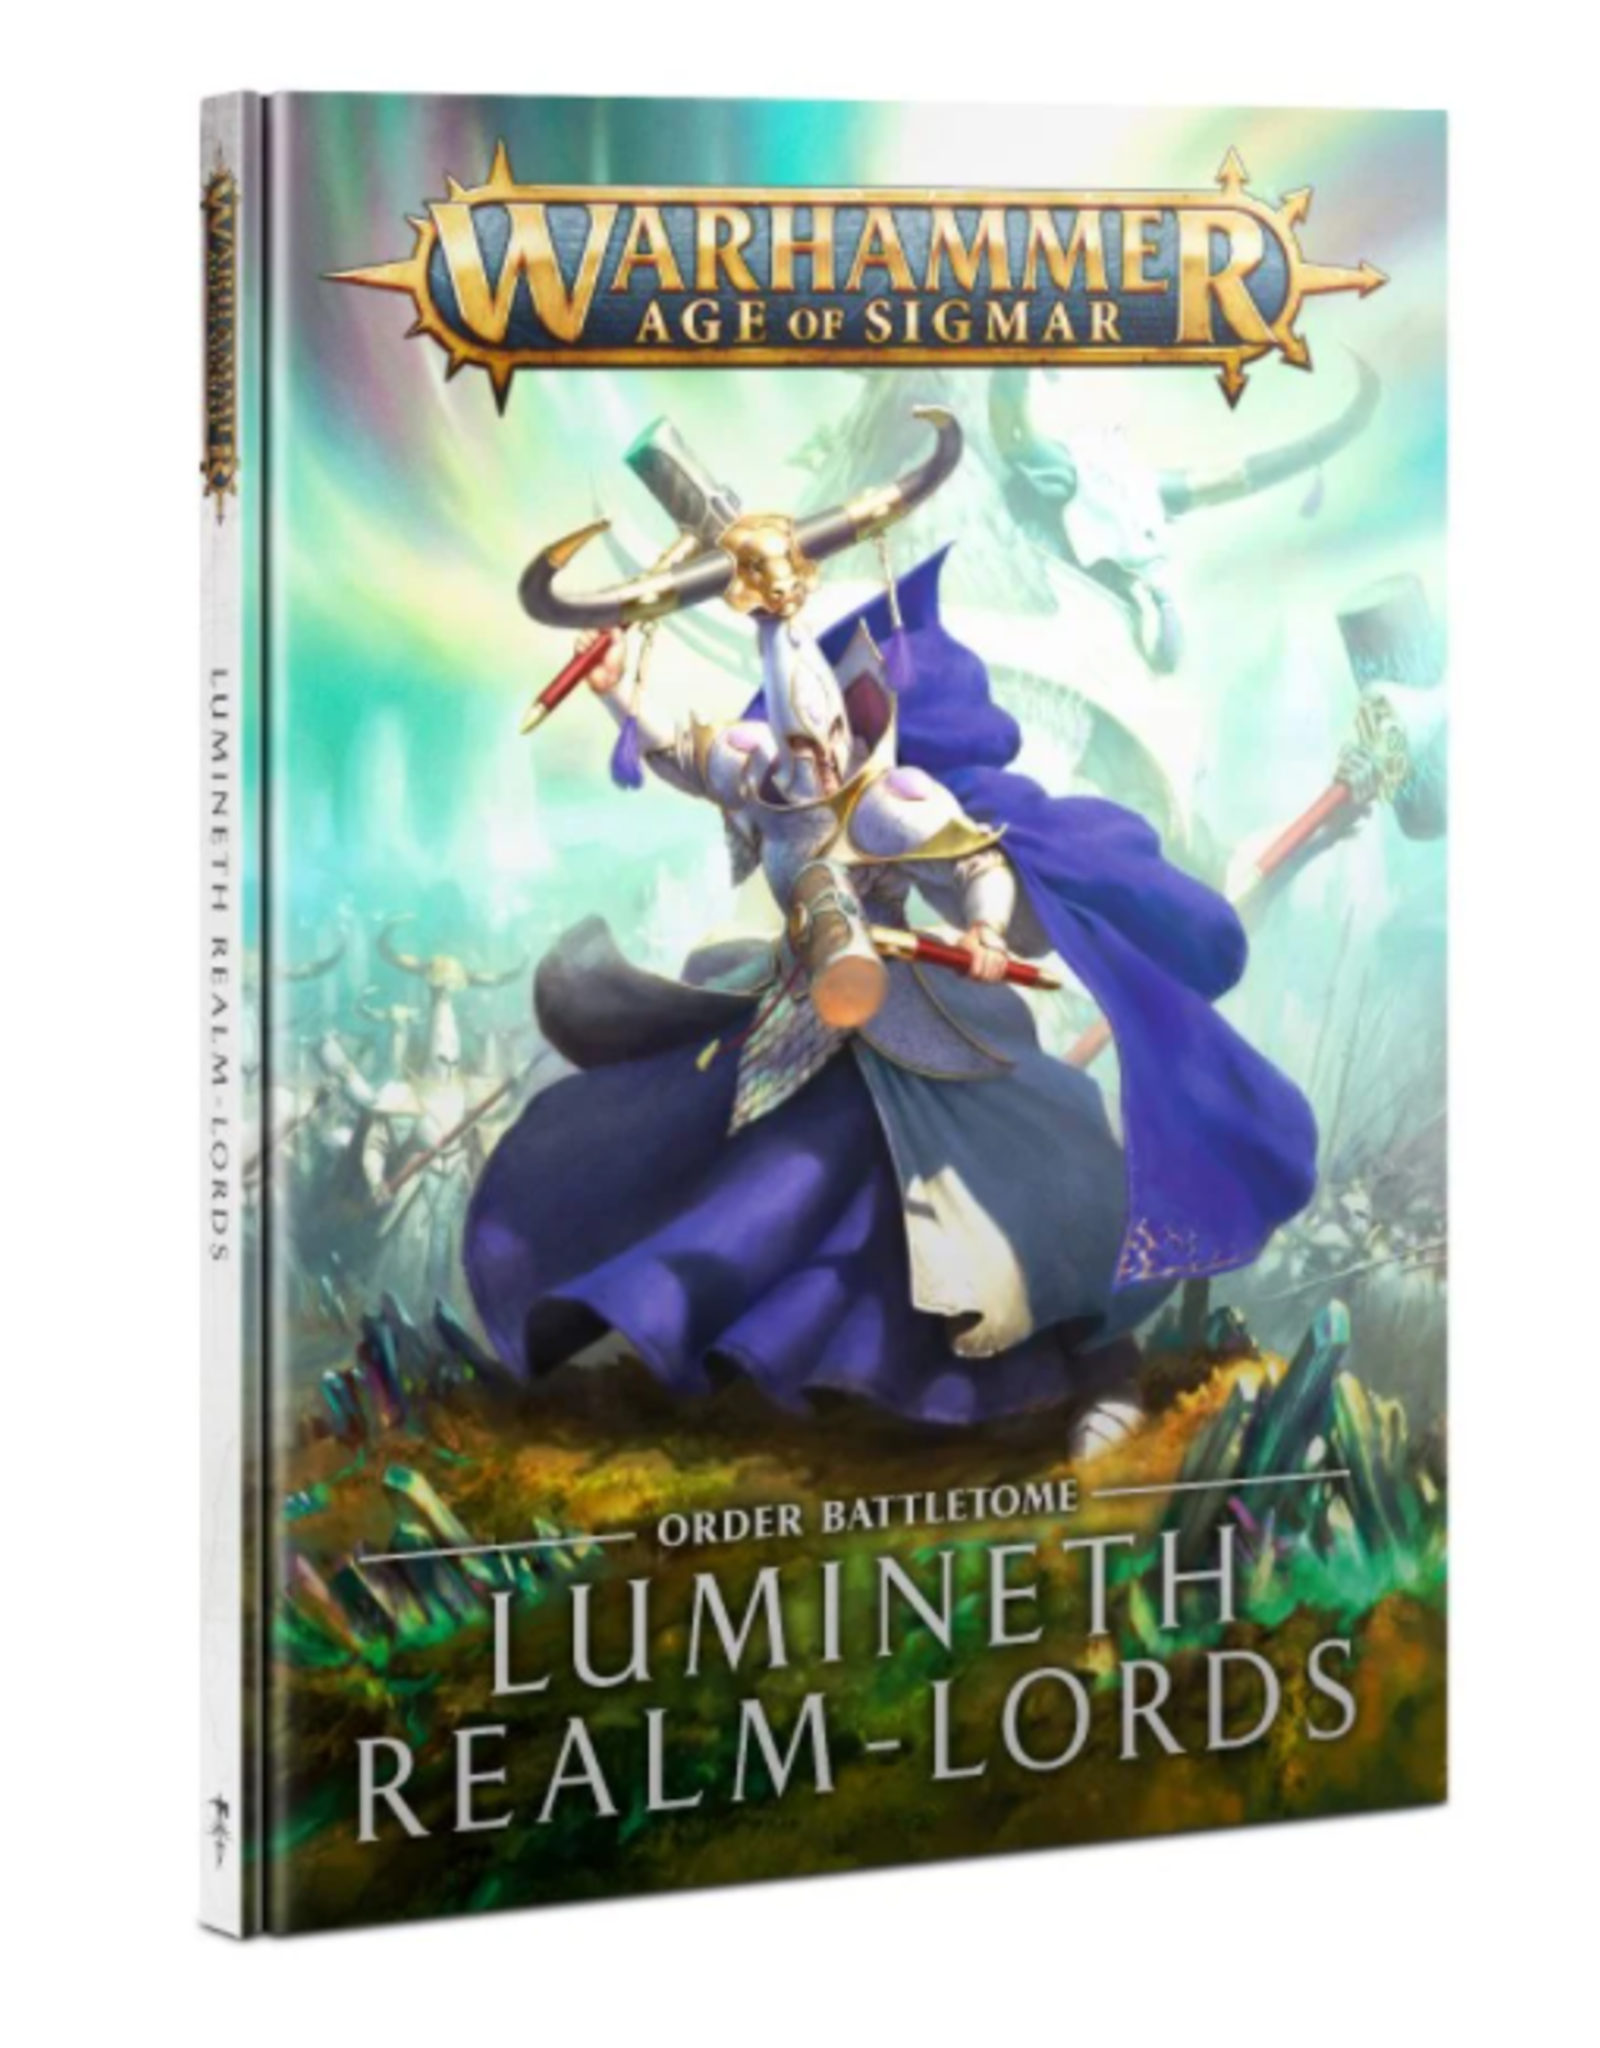 Games Workshop Battletome: Lumineth Realm-Lords